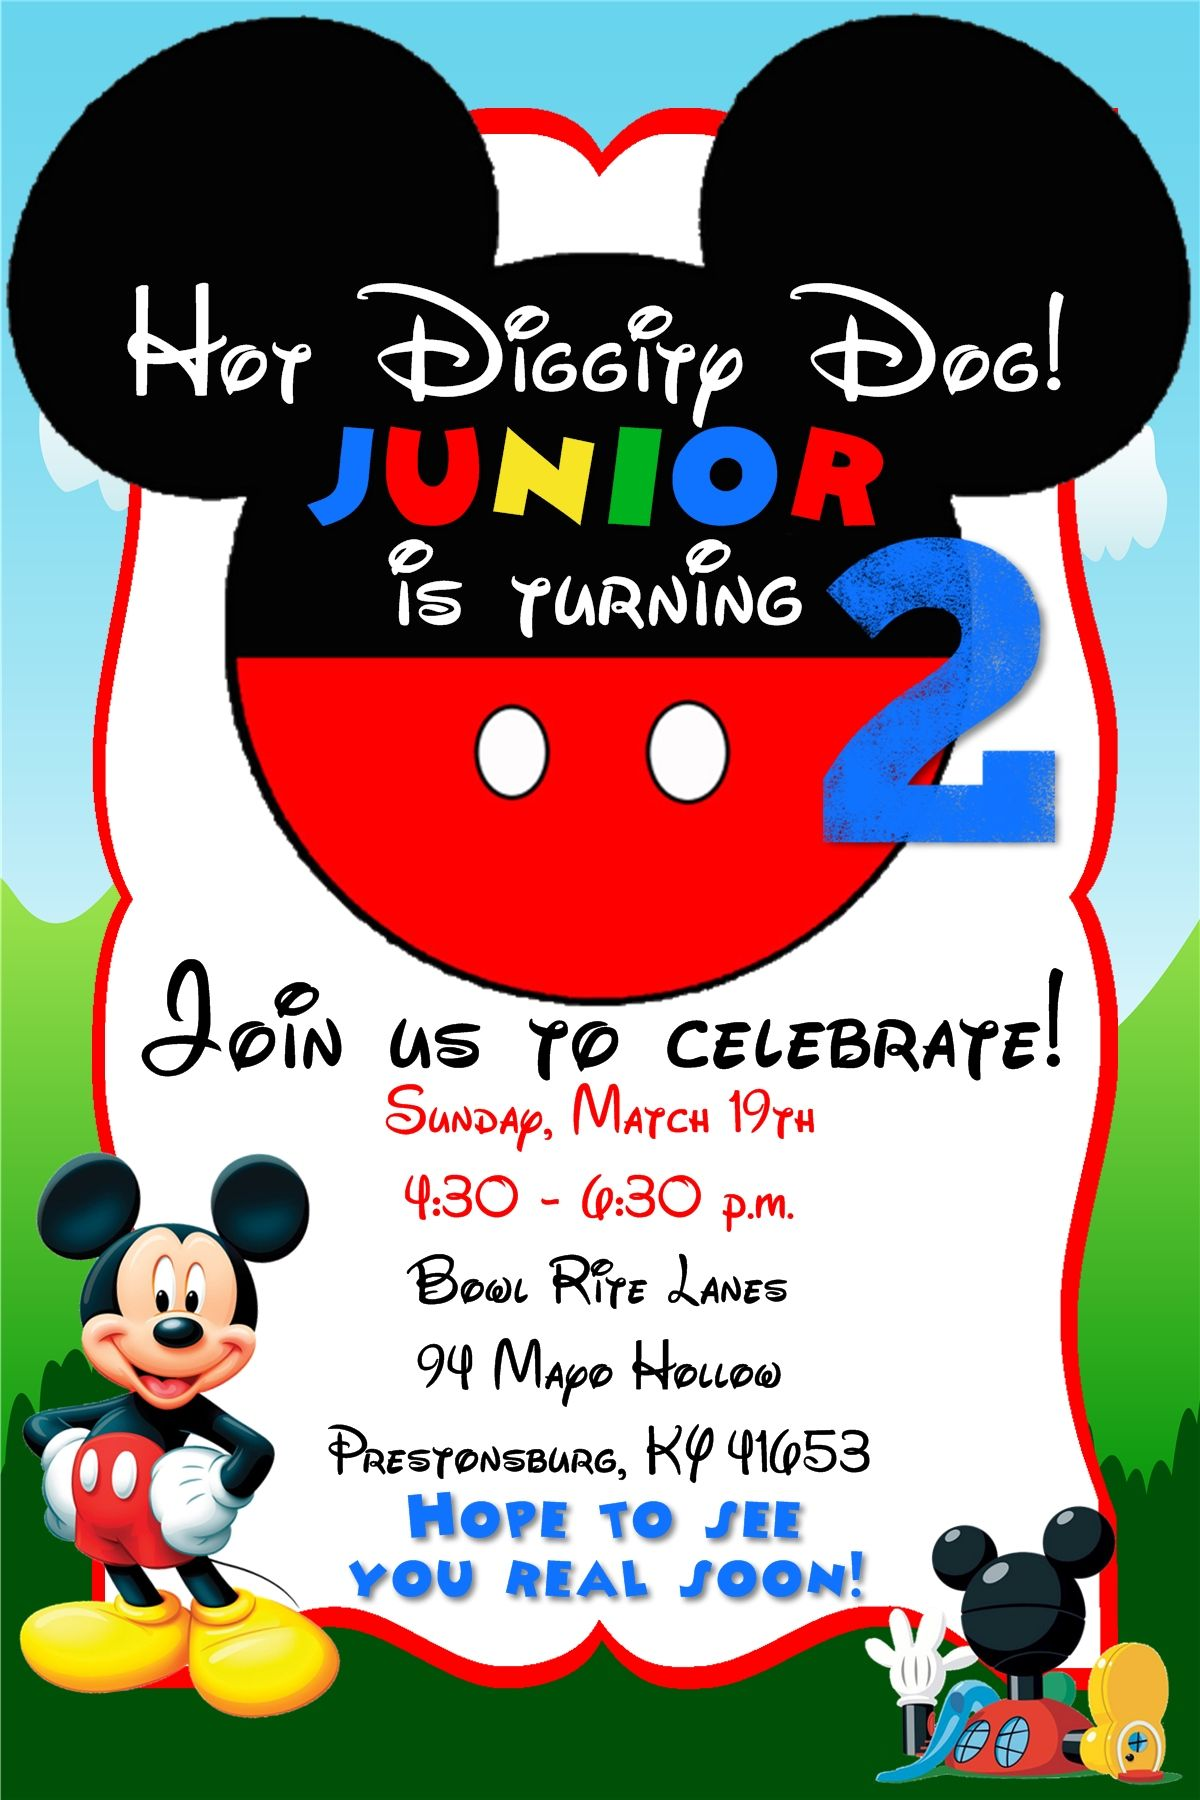 Hot diggity dog mickey mouse clubhouse birthday invitation hot diggity dog mickey mouse clubhouse birthday invitation contact me via email at aswiney01 stopboris Gallery